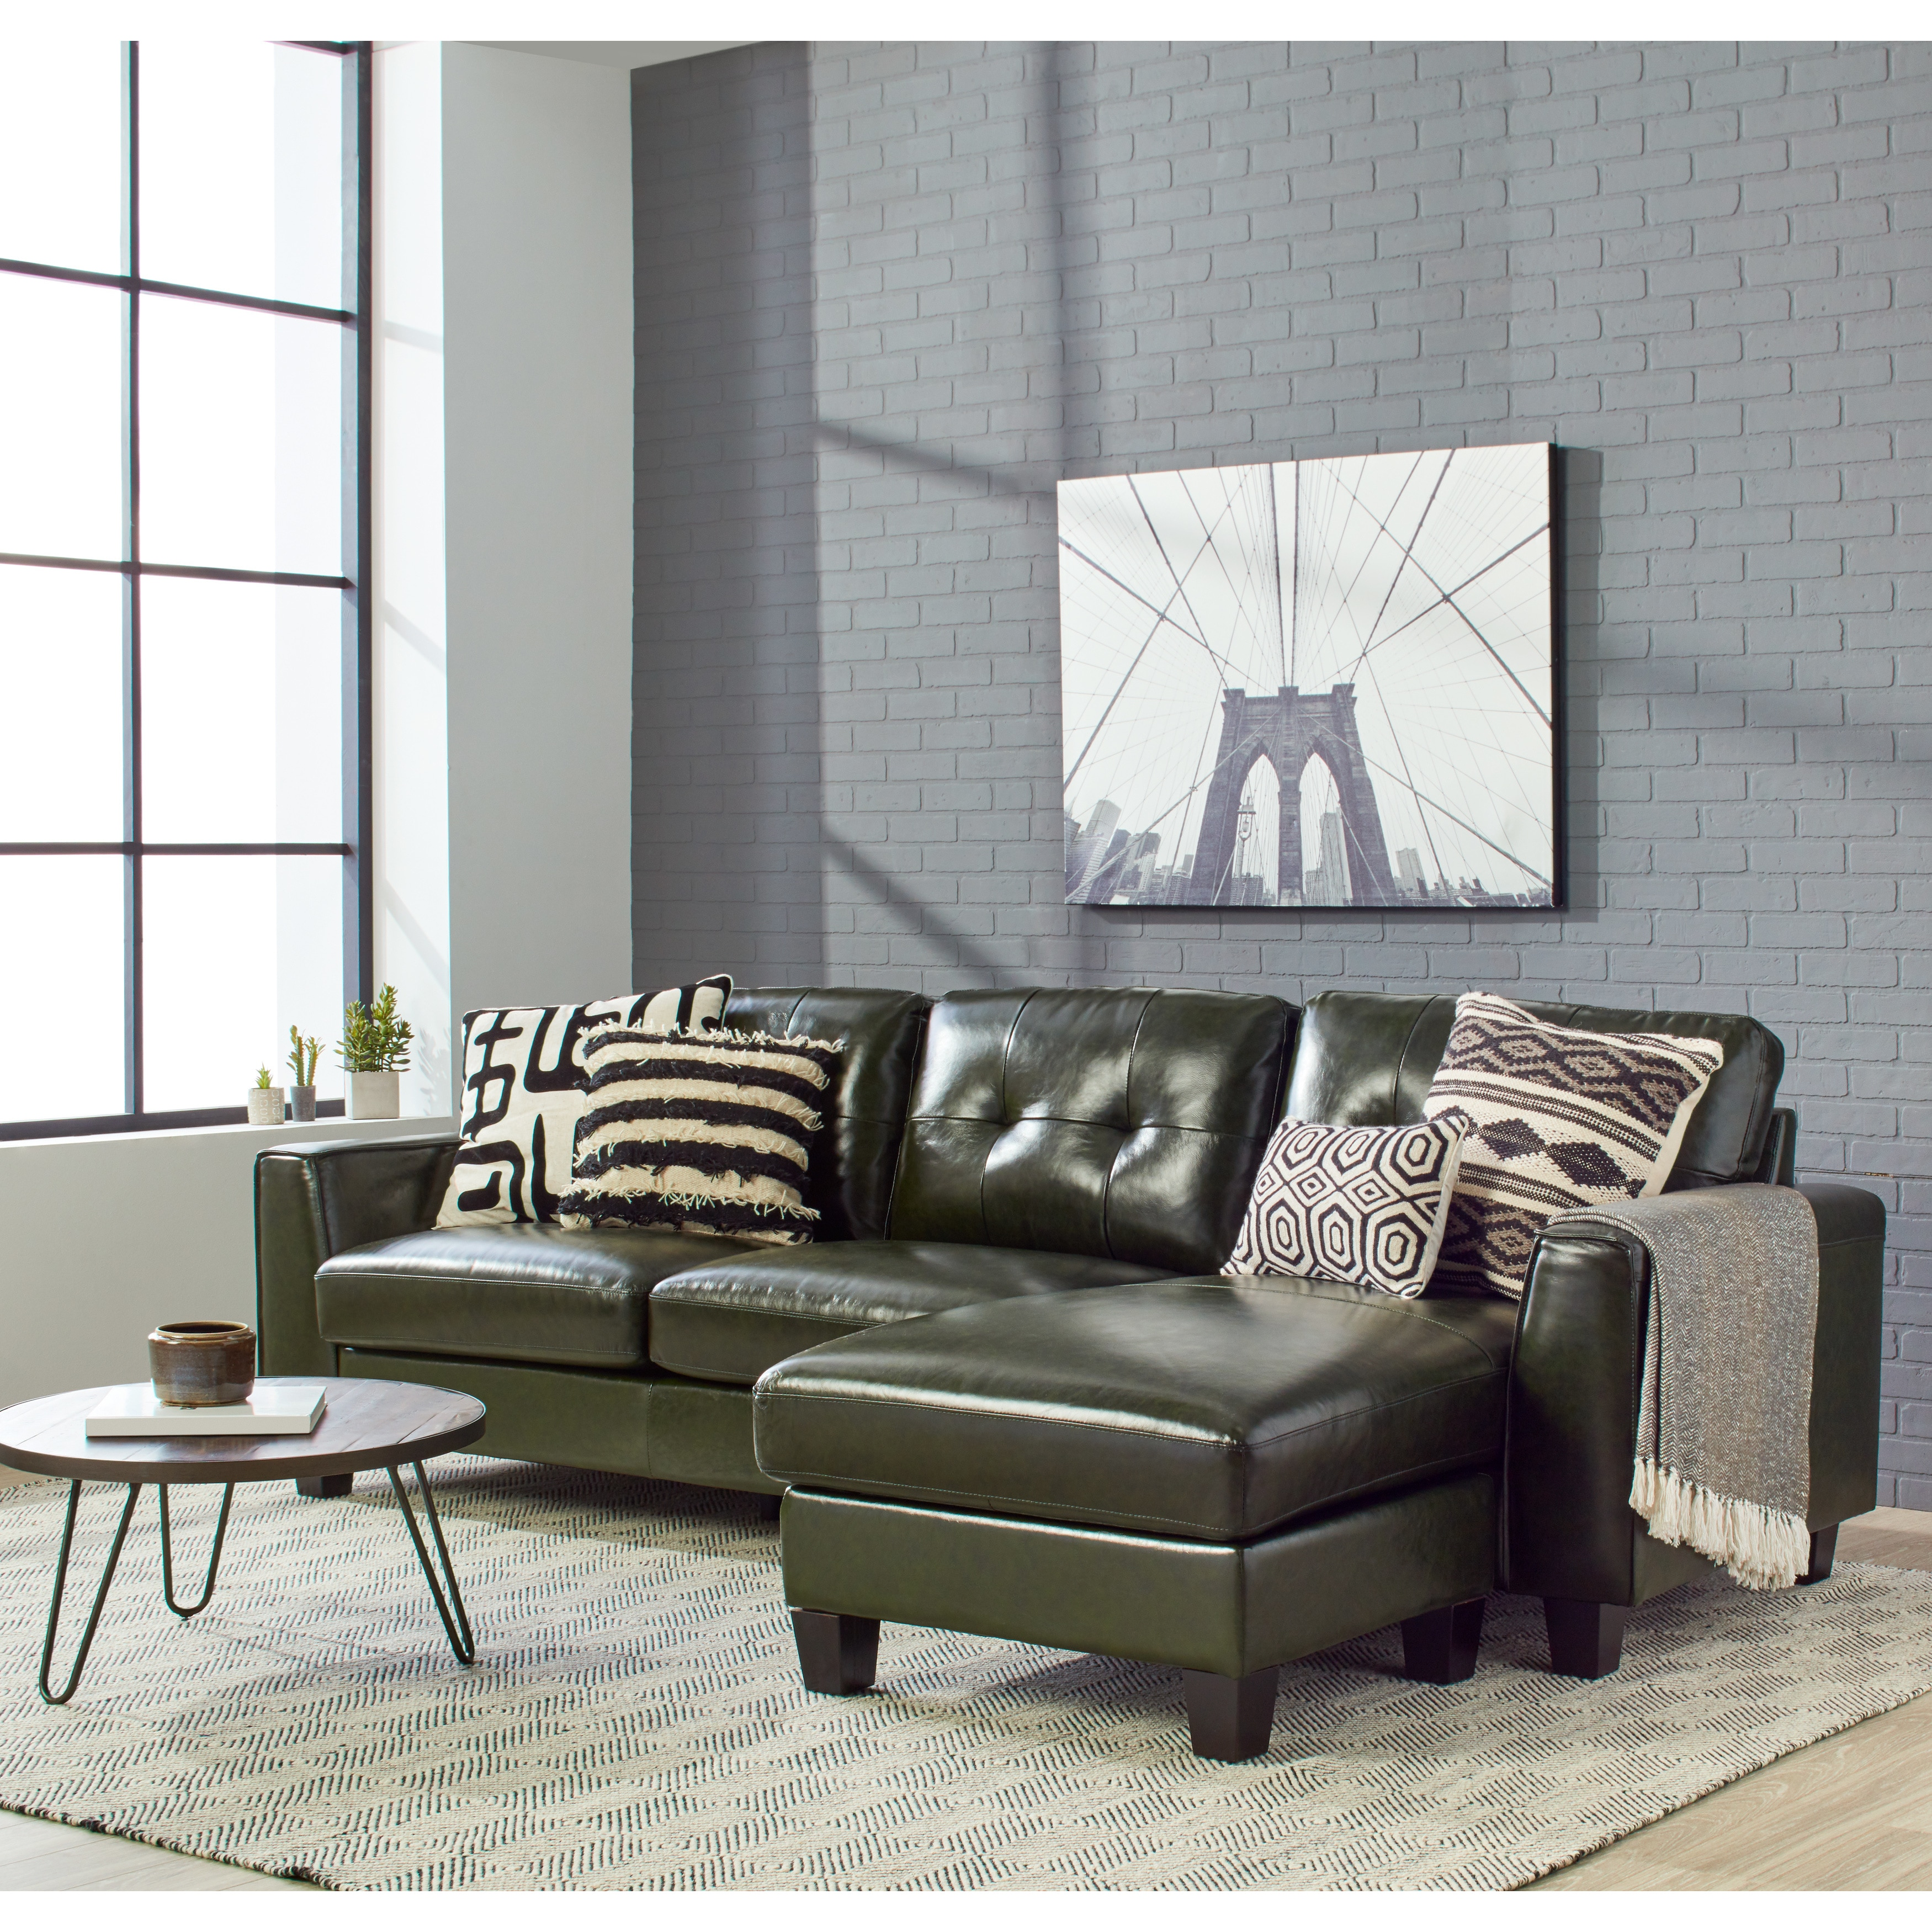 sectional sofas room picture dark ideas photos couches sofa buy living emerald design of designld velvet couch rooms green